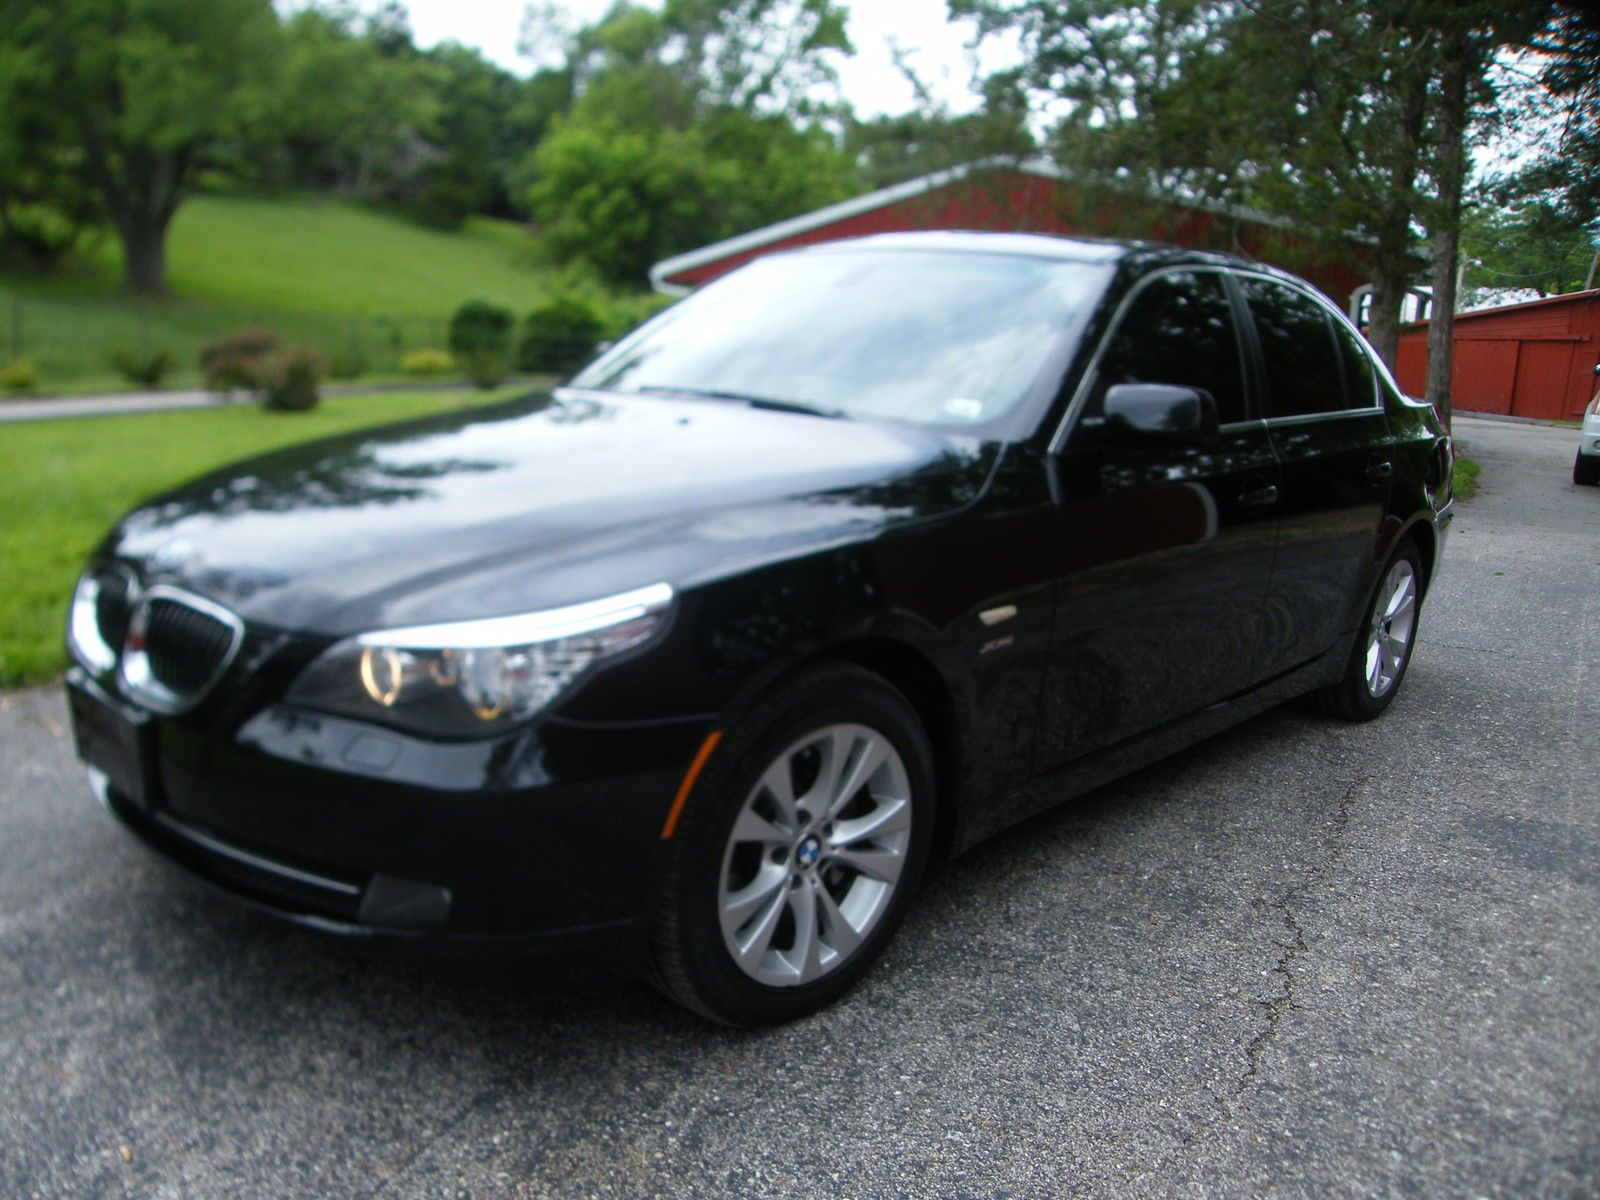 BMW 5 Series 4dr Sdn 535i Super Clean and ready to go